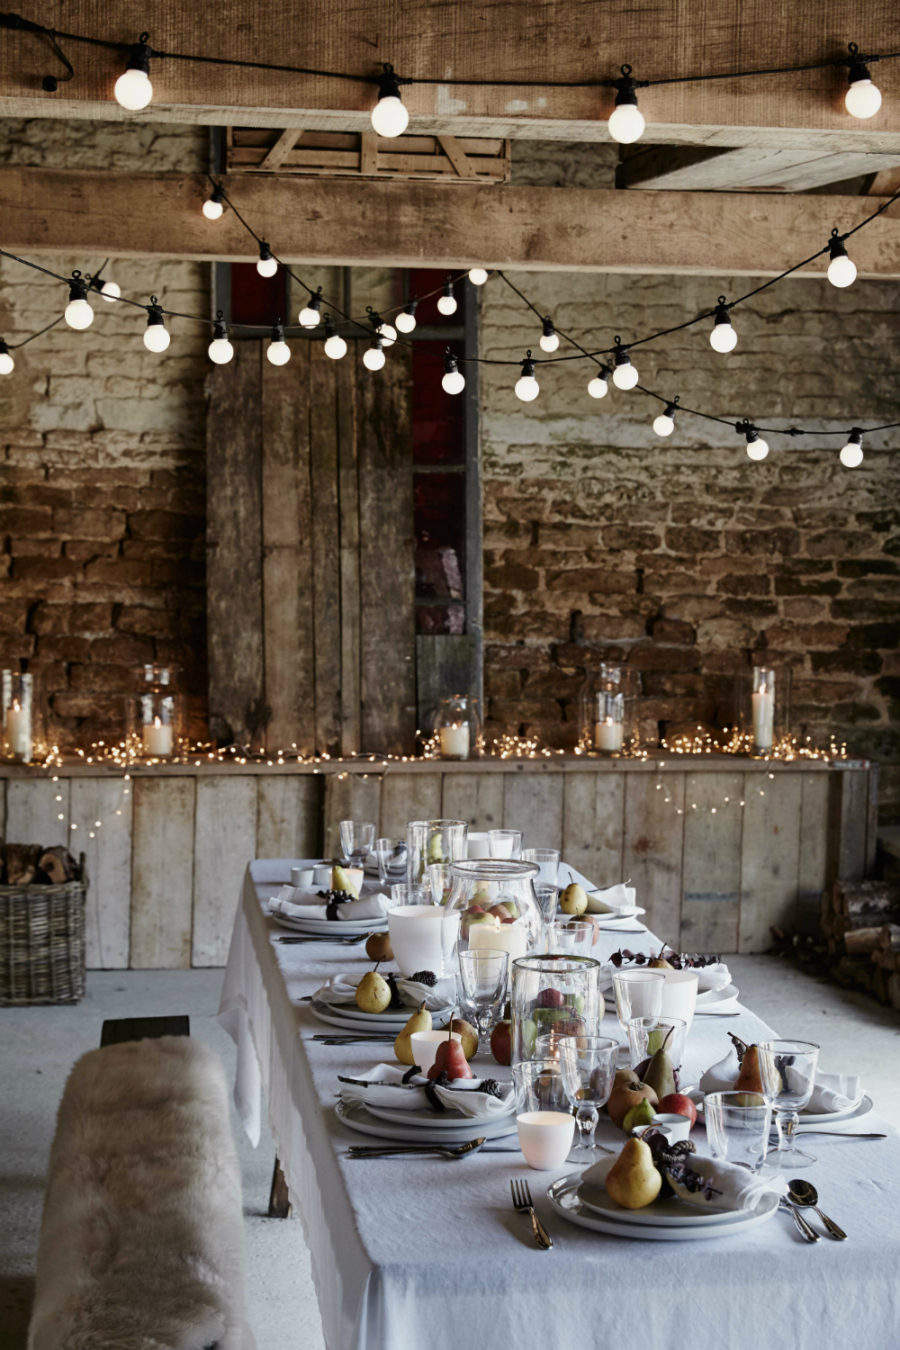 modern christmas table decor via ideas design view in gallery rustic modern christmas decor - Modern Christmas Decorating Ideas